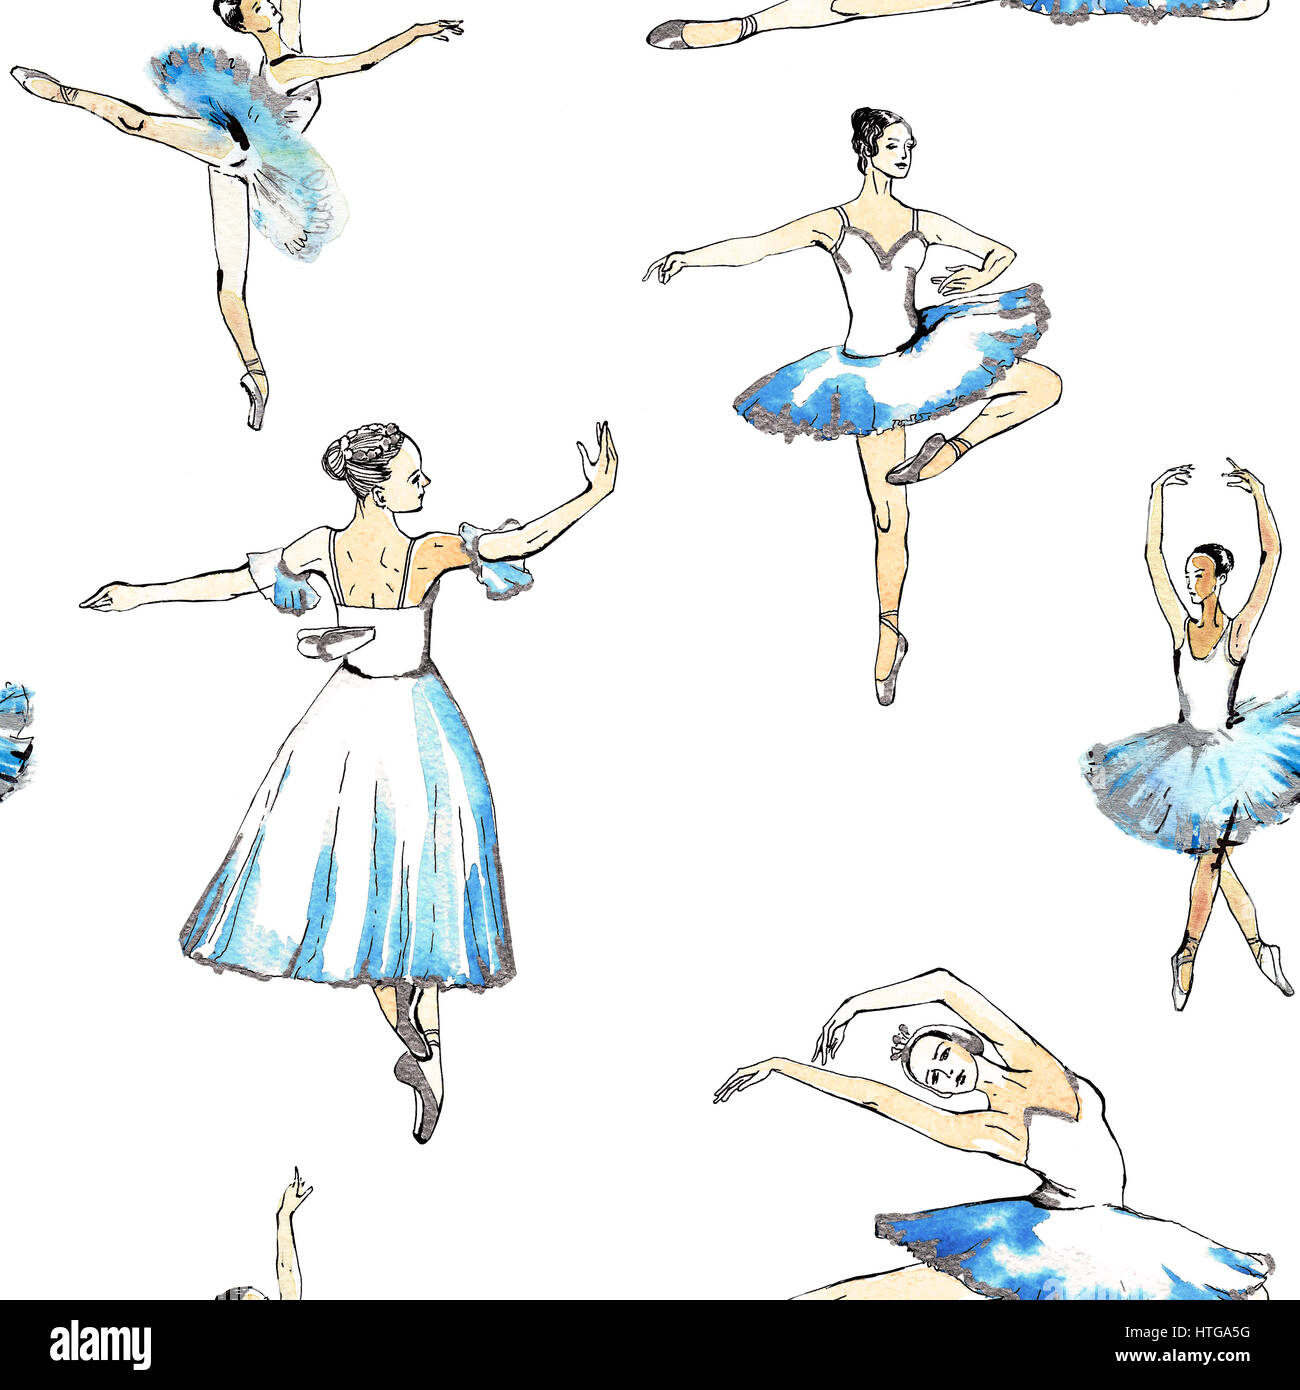 Seamless Pattern Of Ballet Dancers Black And Silver Drawing Stock Photo Alamy